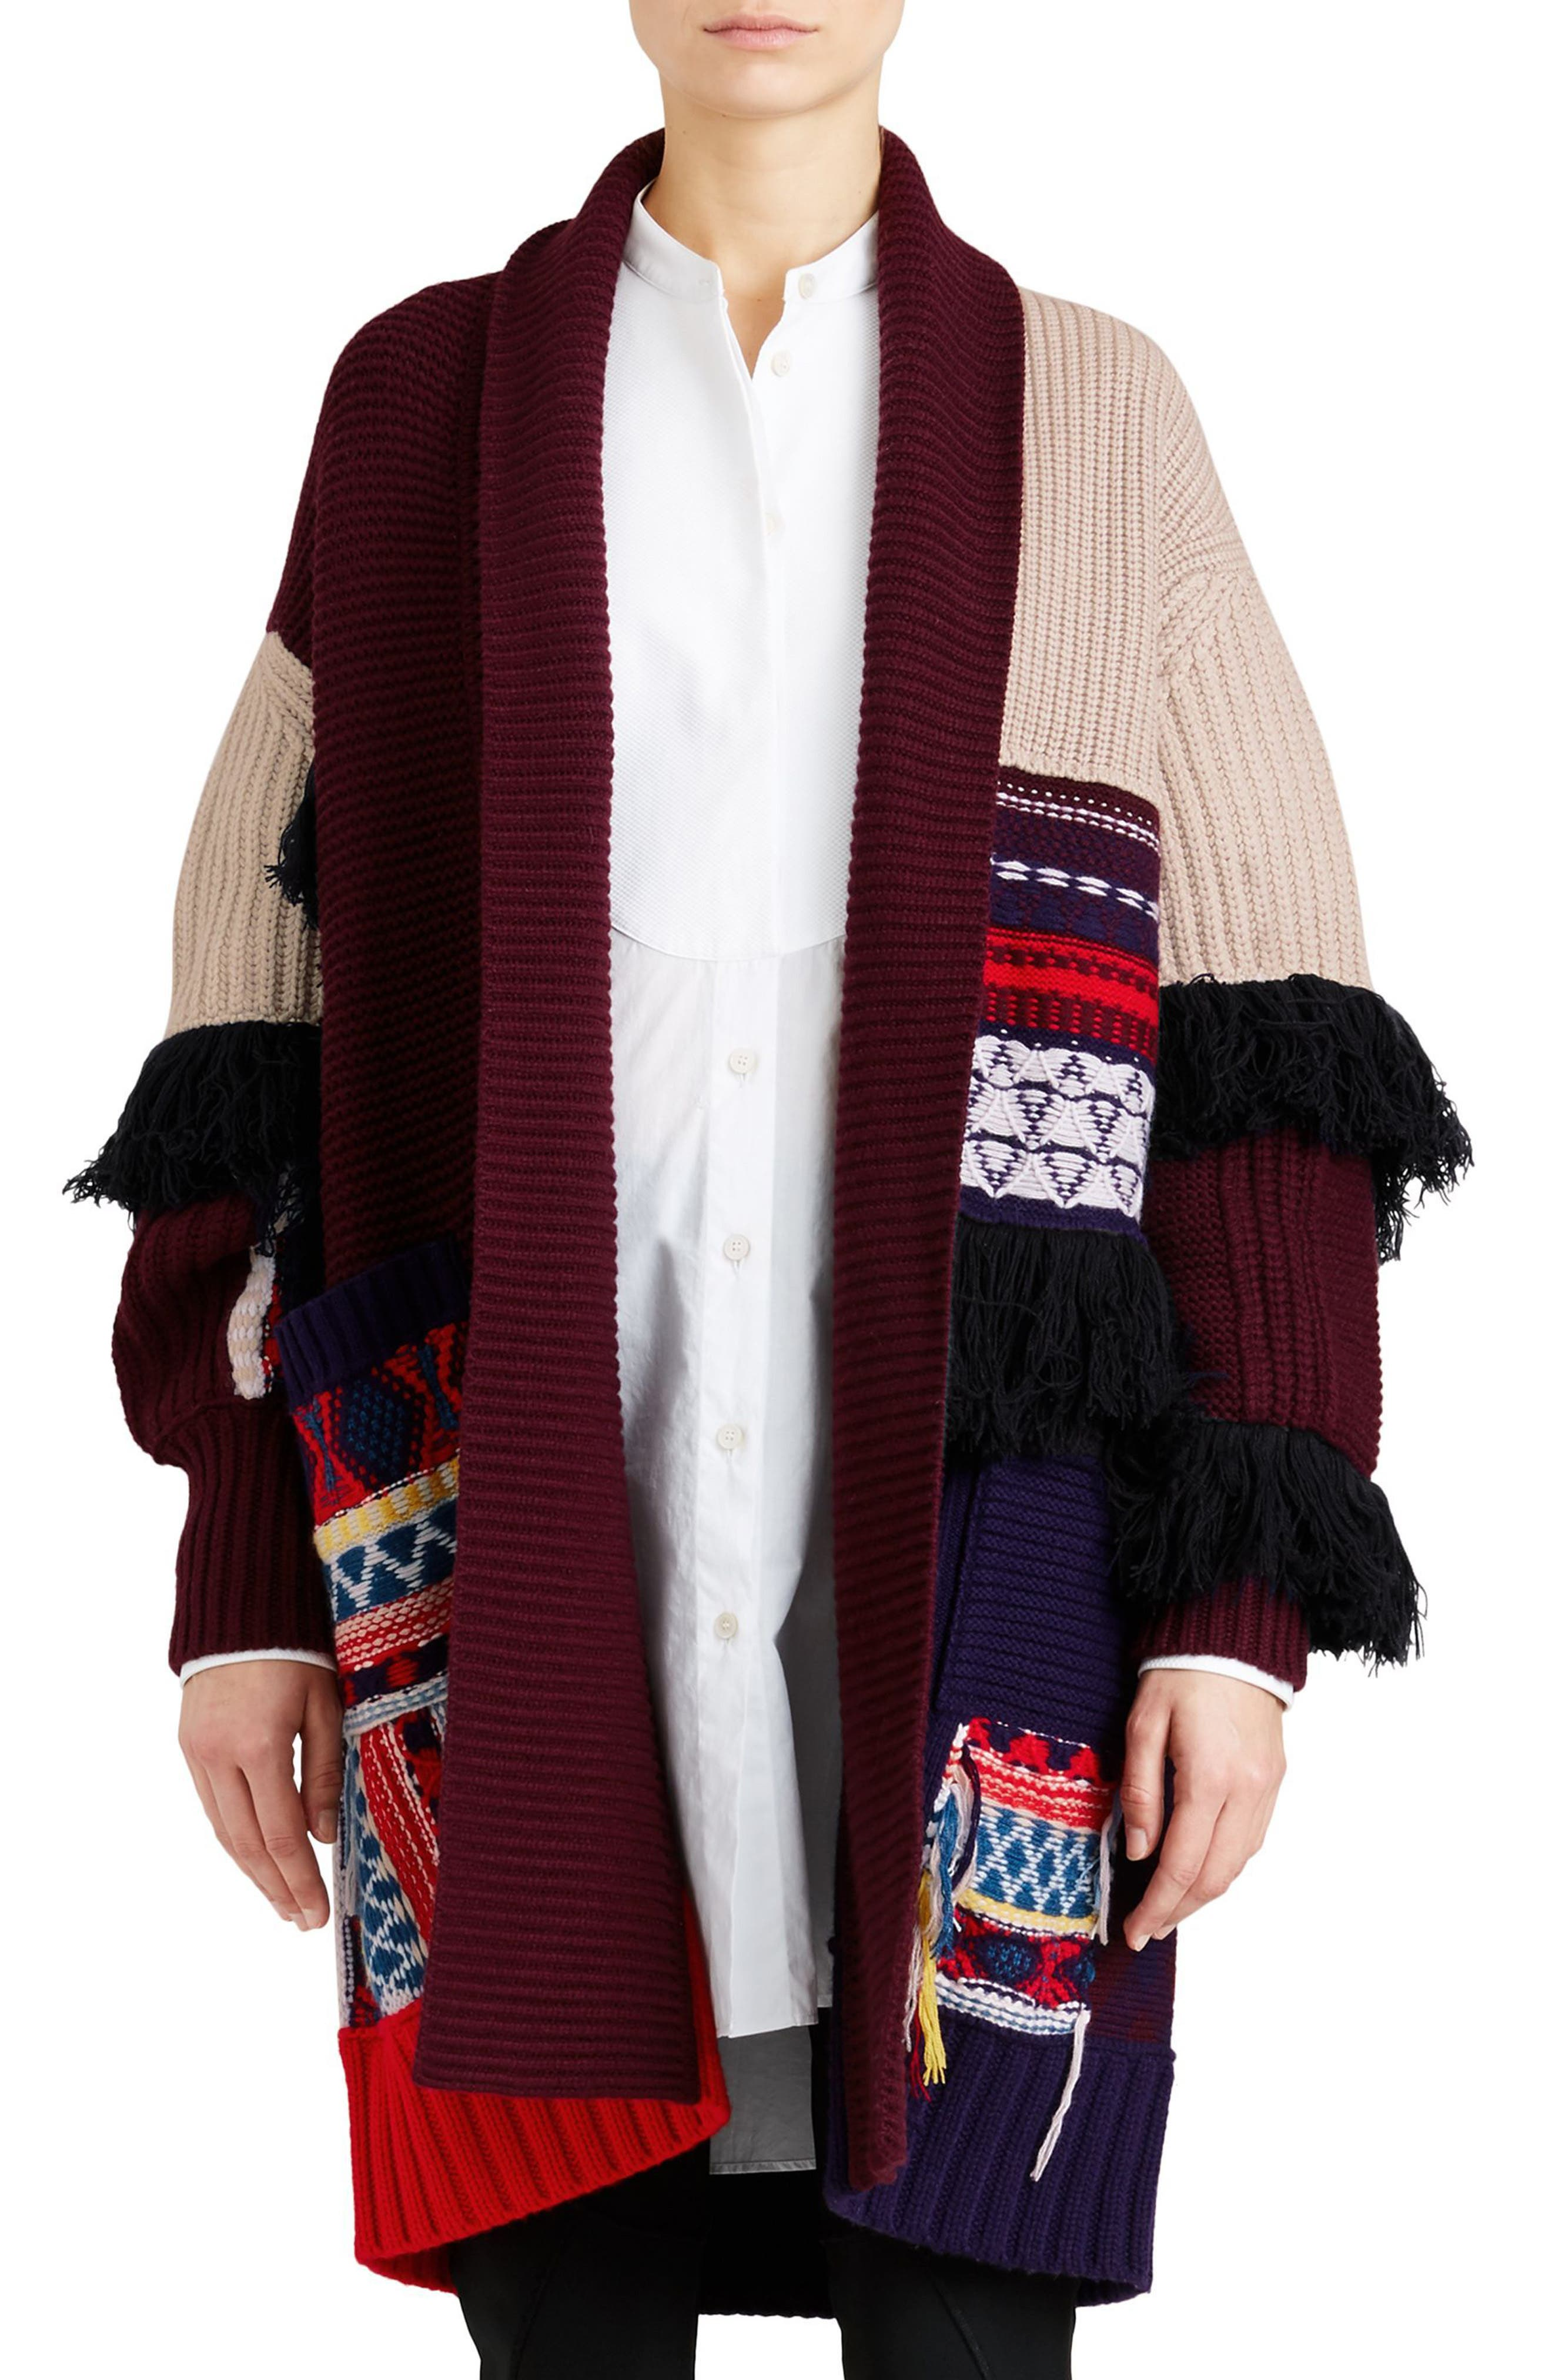 Rotaldo Wool & Cashmere Patchwork Cardigan,                         Main,                         color, 103